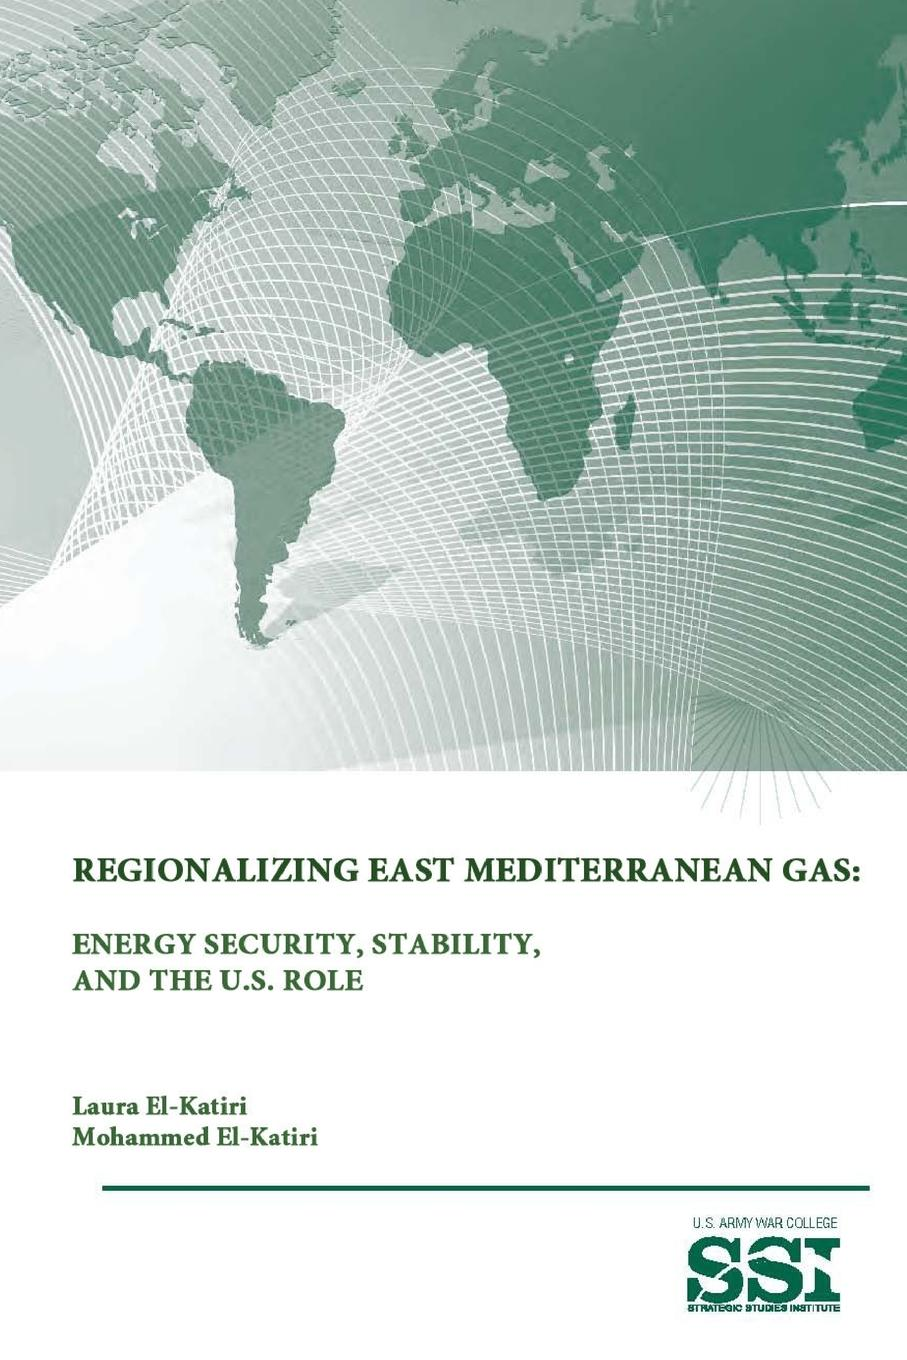 Mohammed El-Katiri, Strategic Studies Institute, U.S. Army War College Regionalizing East Mediterranean Gas. Energy Security, Stability, and The U.S. Role brahma solenoid valves eg30 s 2 gmo for gas burner new